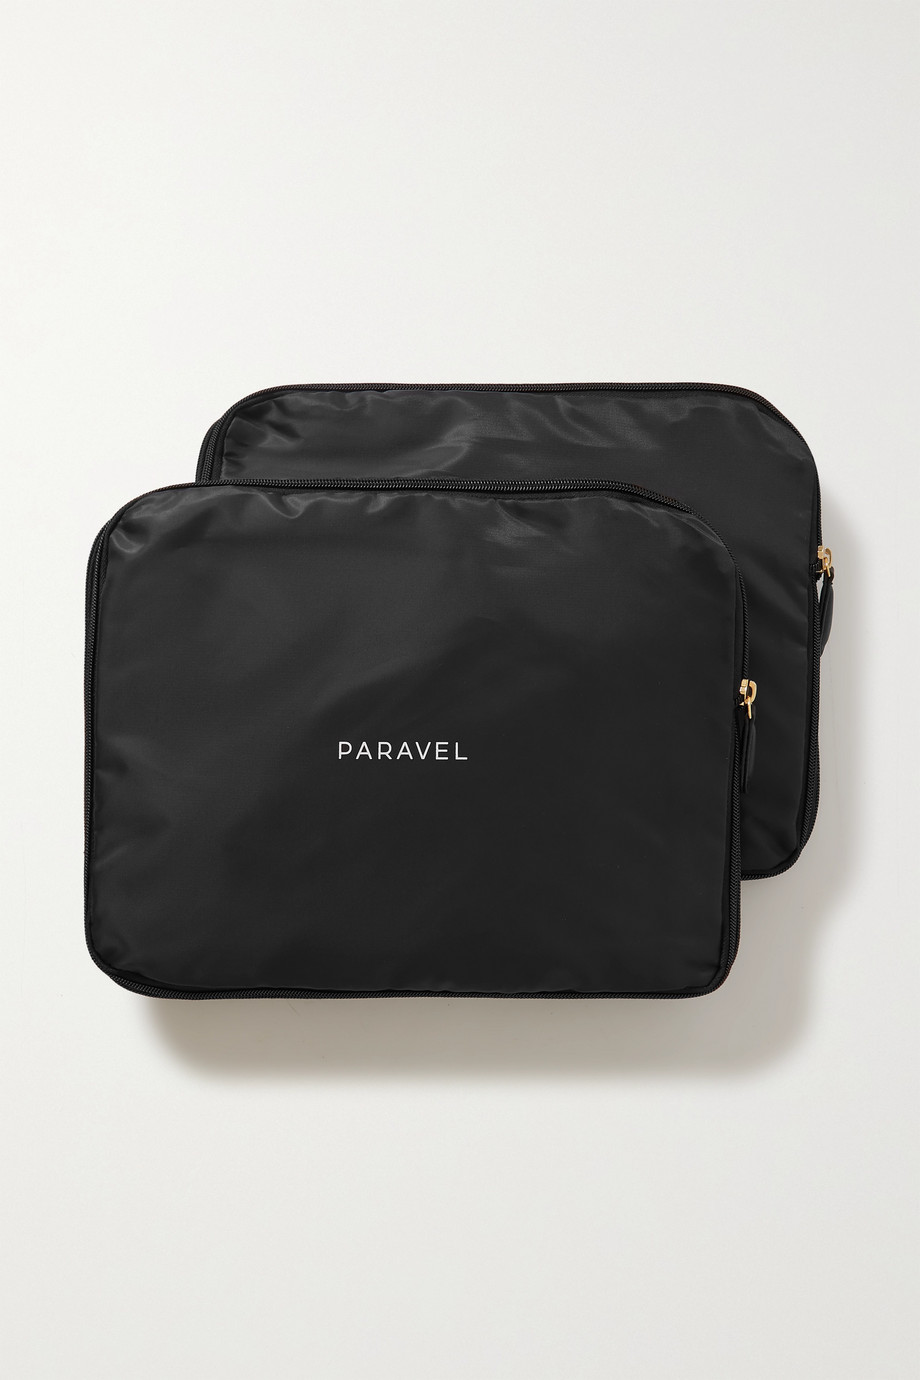 Paravel Compression Cube Duo